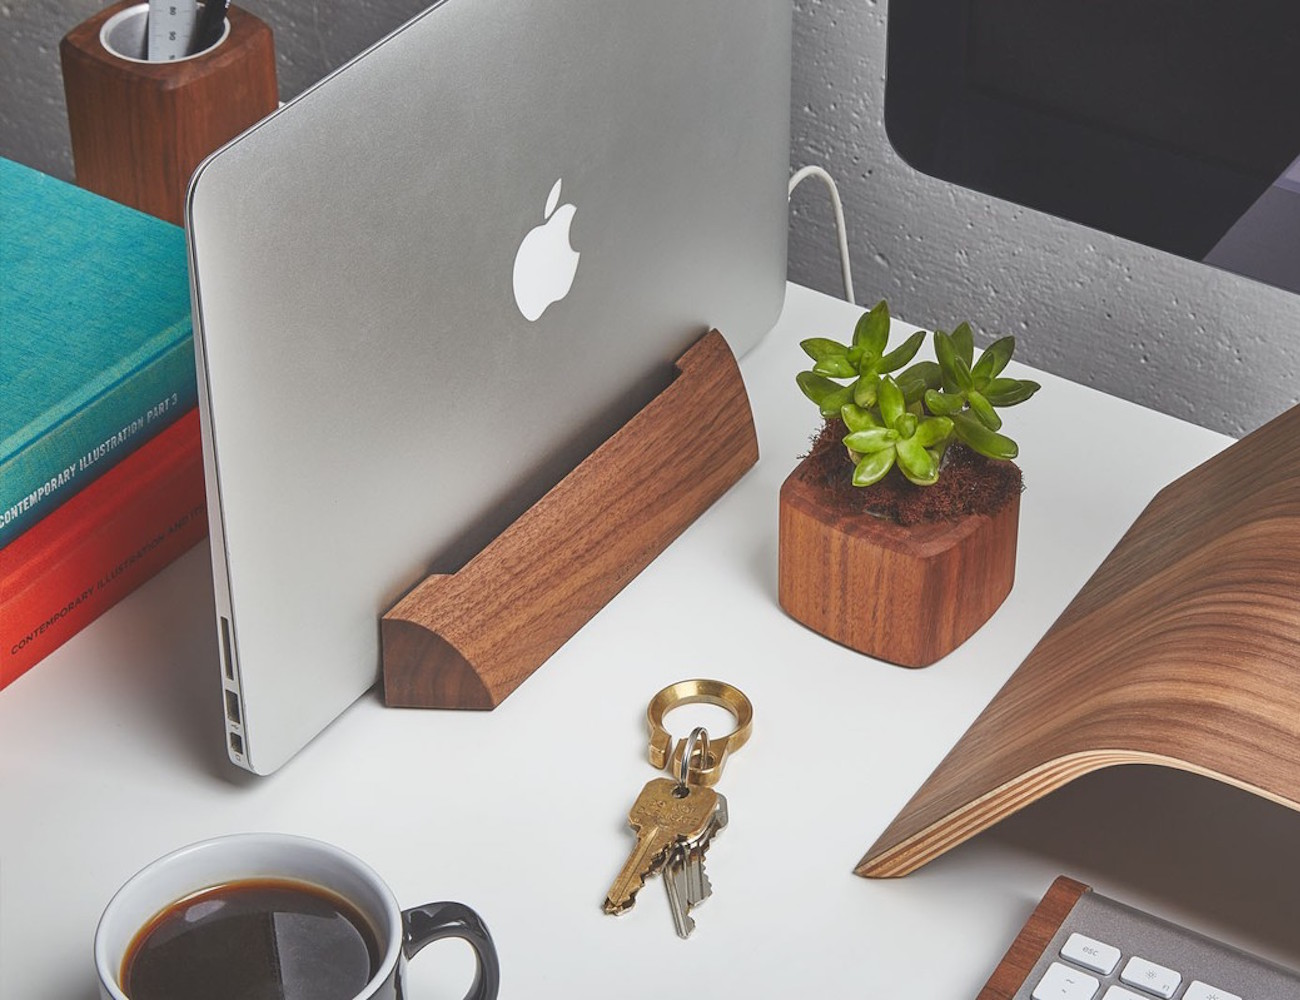 Walnut MacBook Dock by Grovemade